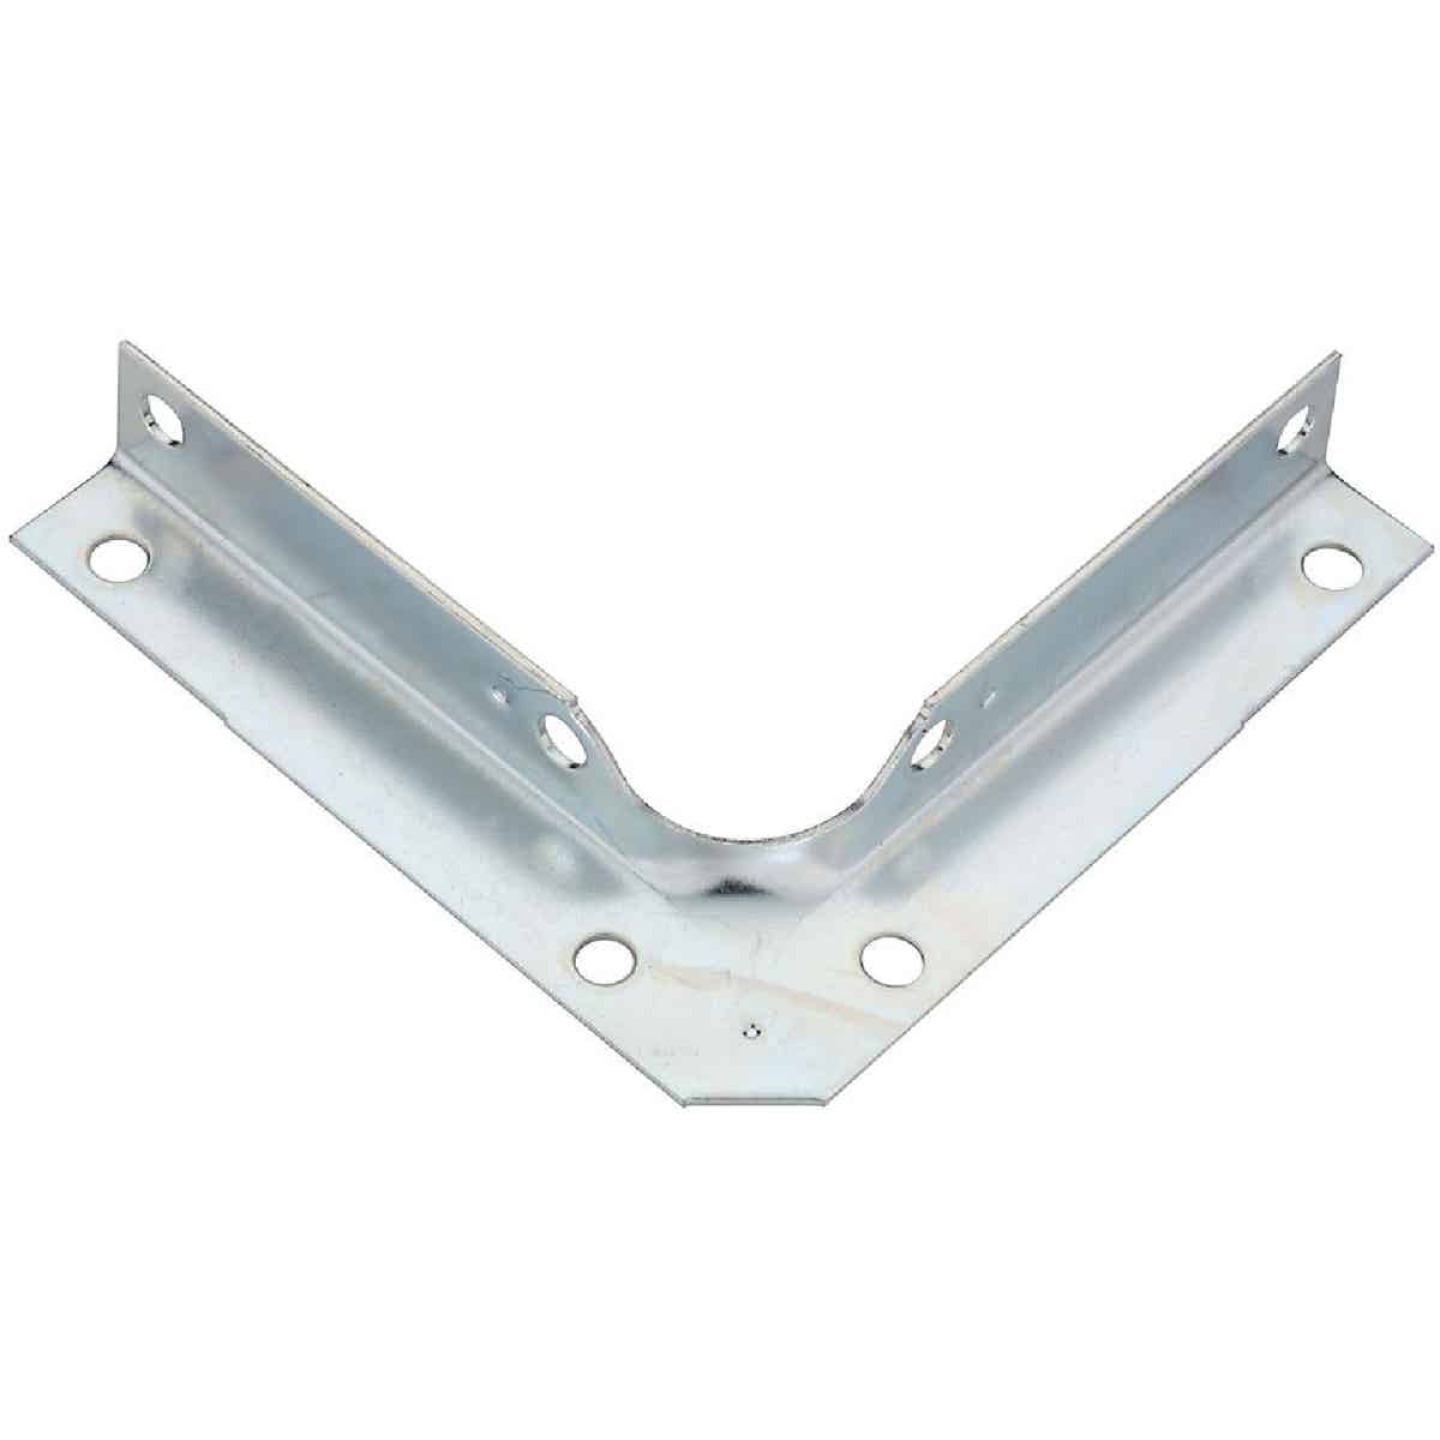 National Catalog V114 Series 4 In. x 5/8 In. Zinc Corner Brace (4-Count) Image 1